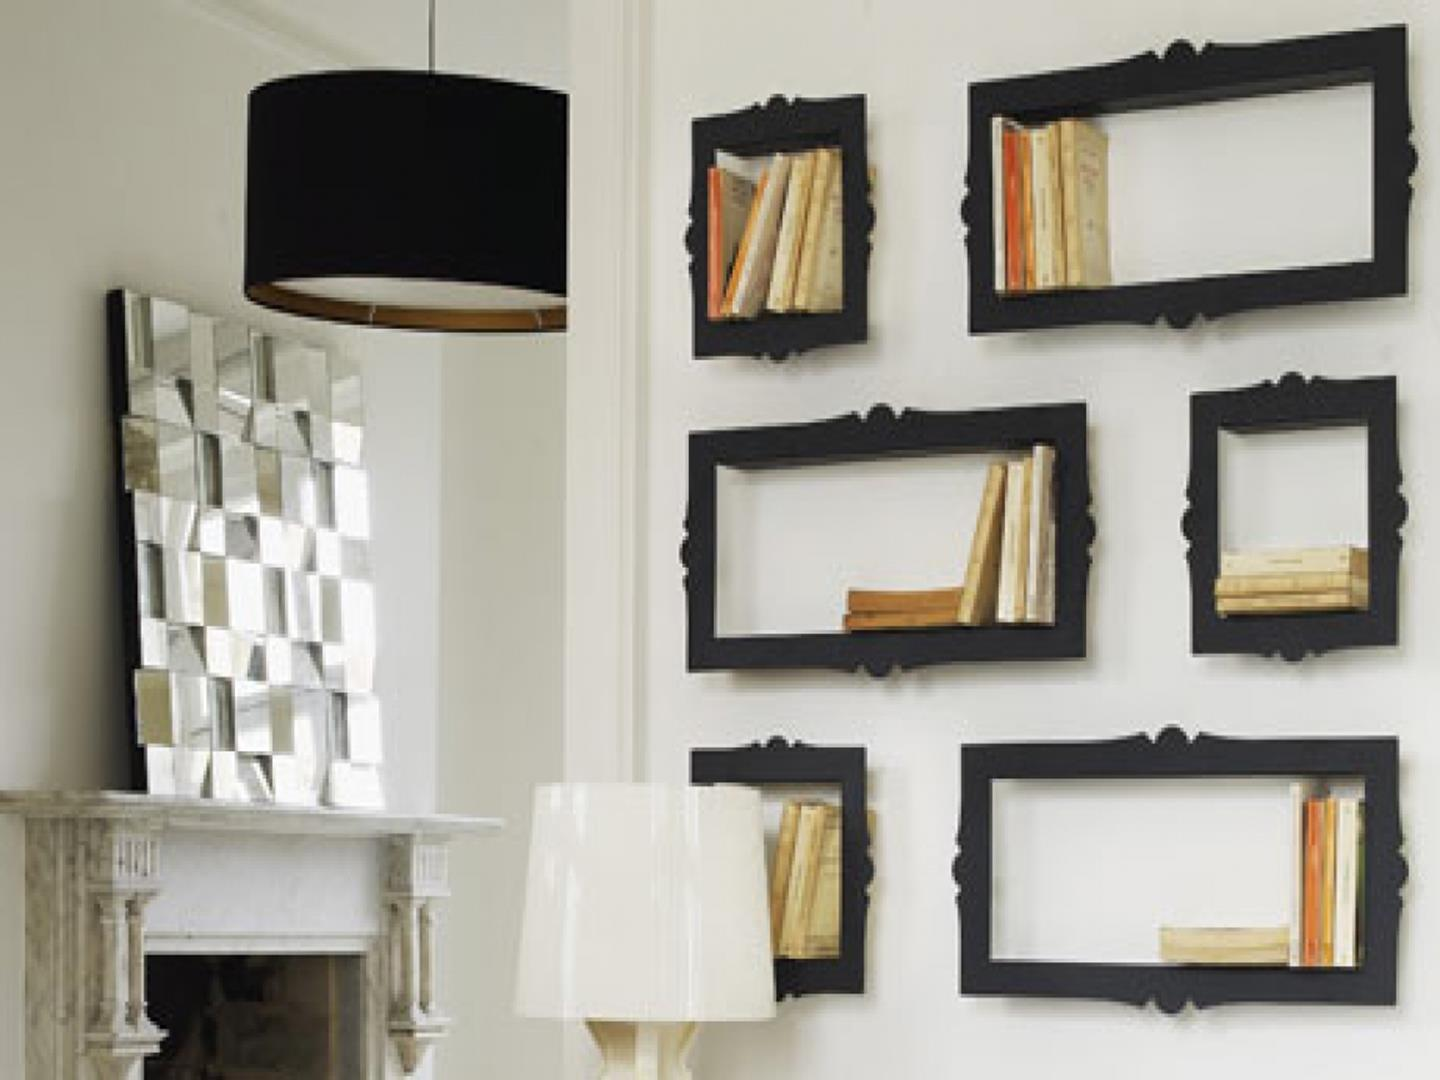 Perfect Bookshelves For Small Spaces and Decor Ideas 31